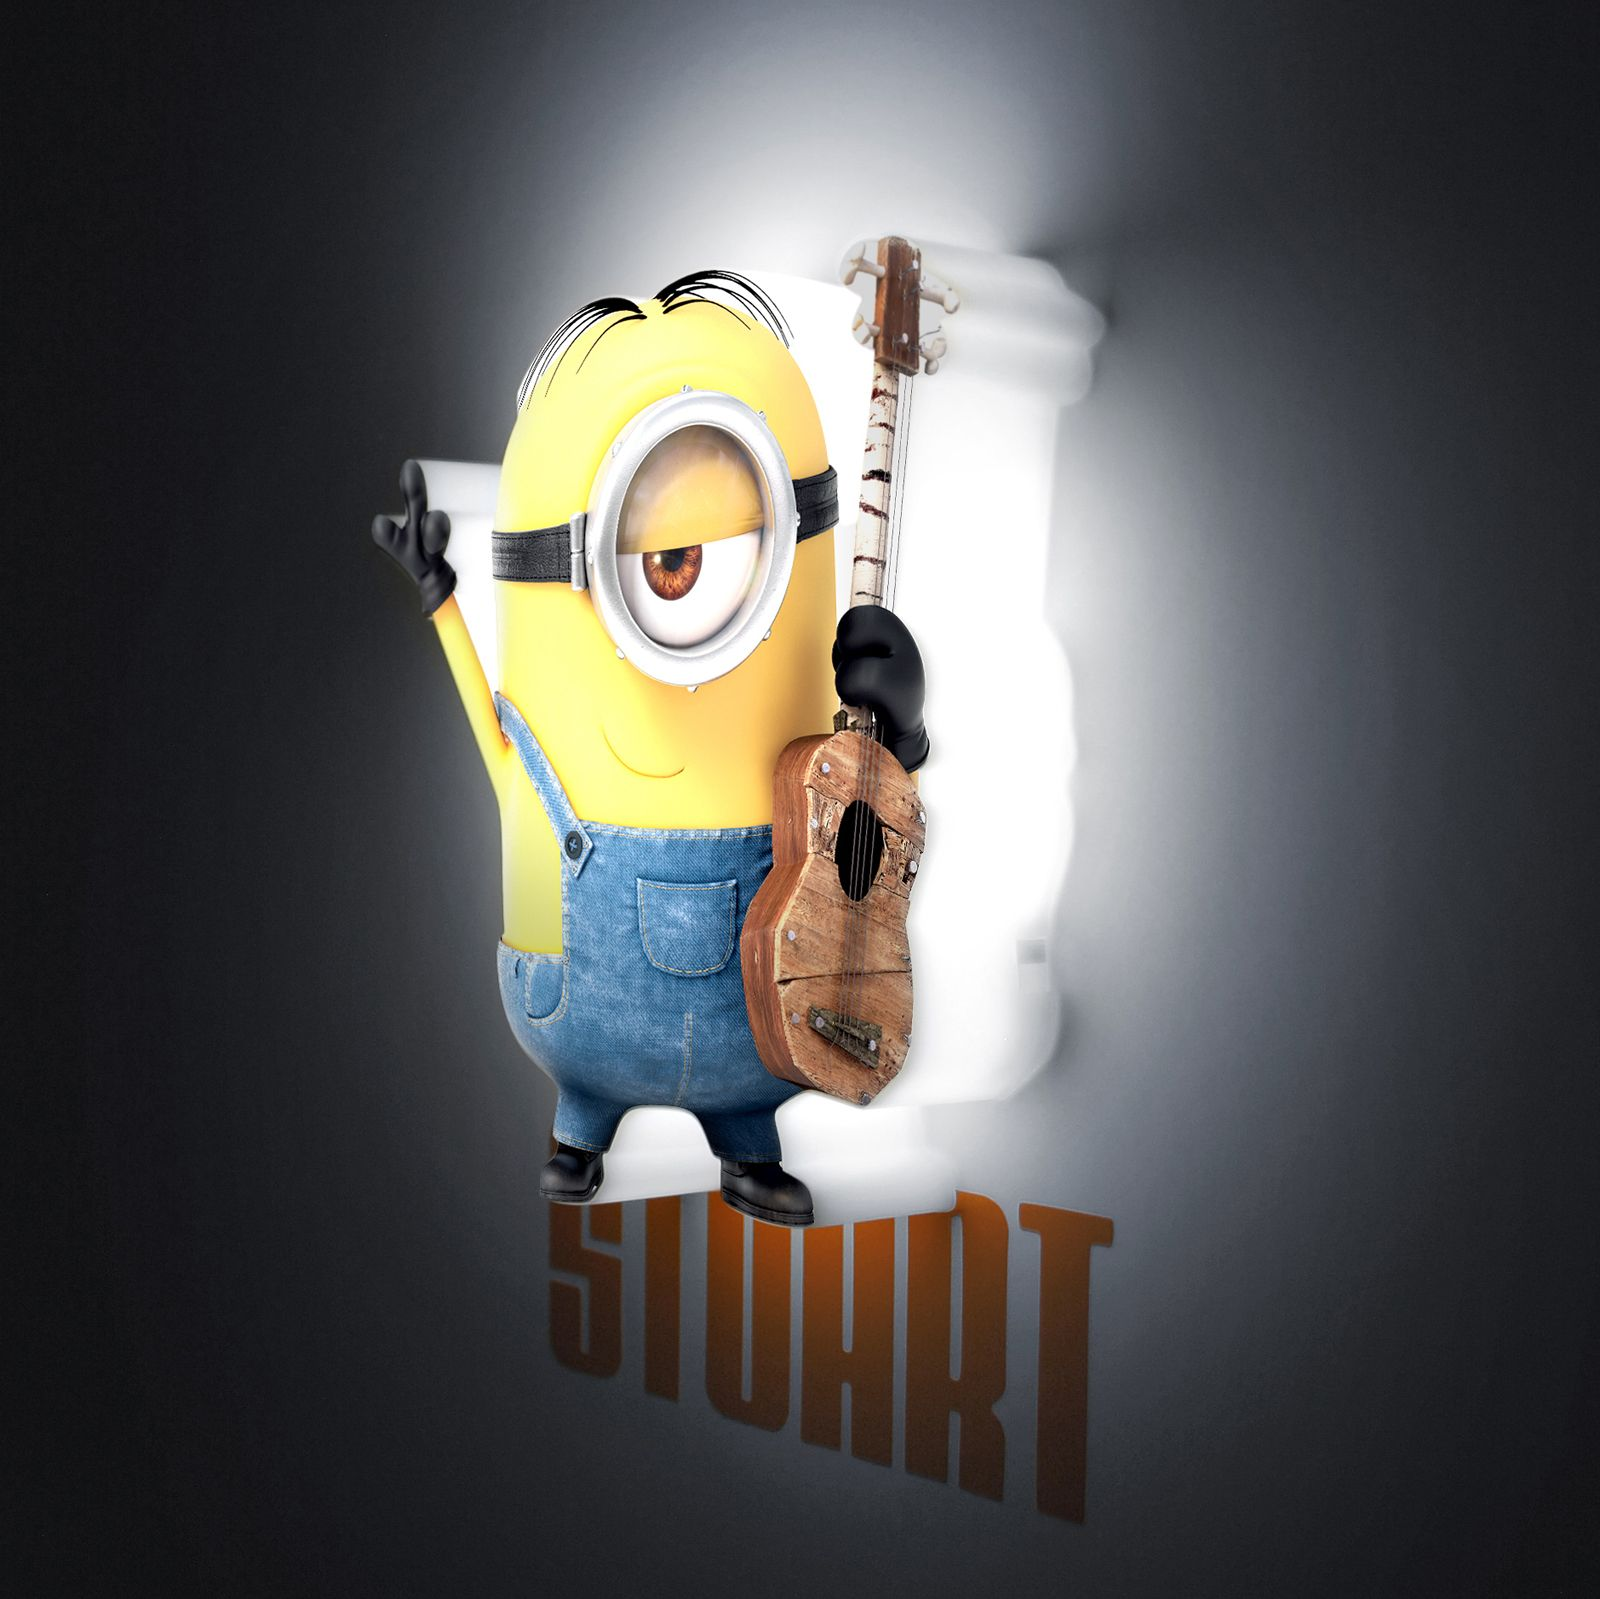 Minions 3d led mini wall lights bob stuart kevin kids deco minions 3d led mini wall lights bob stuart kevin kids deco despicable me aloadofball Image collections